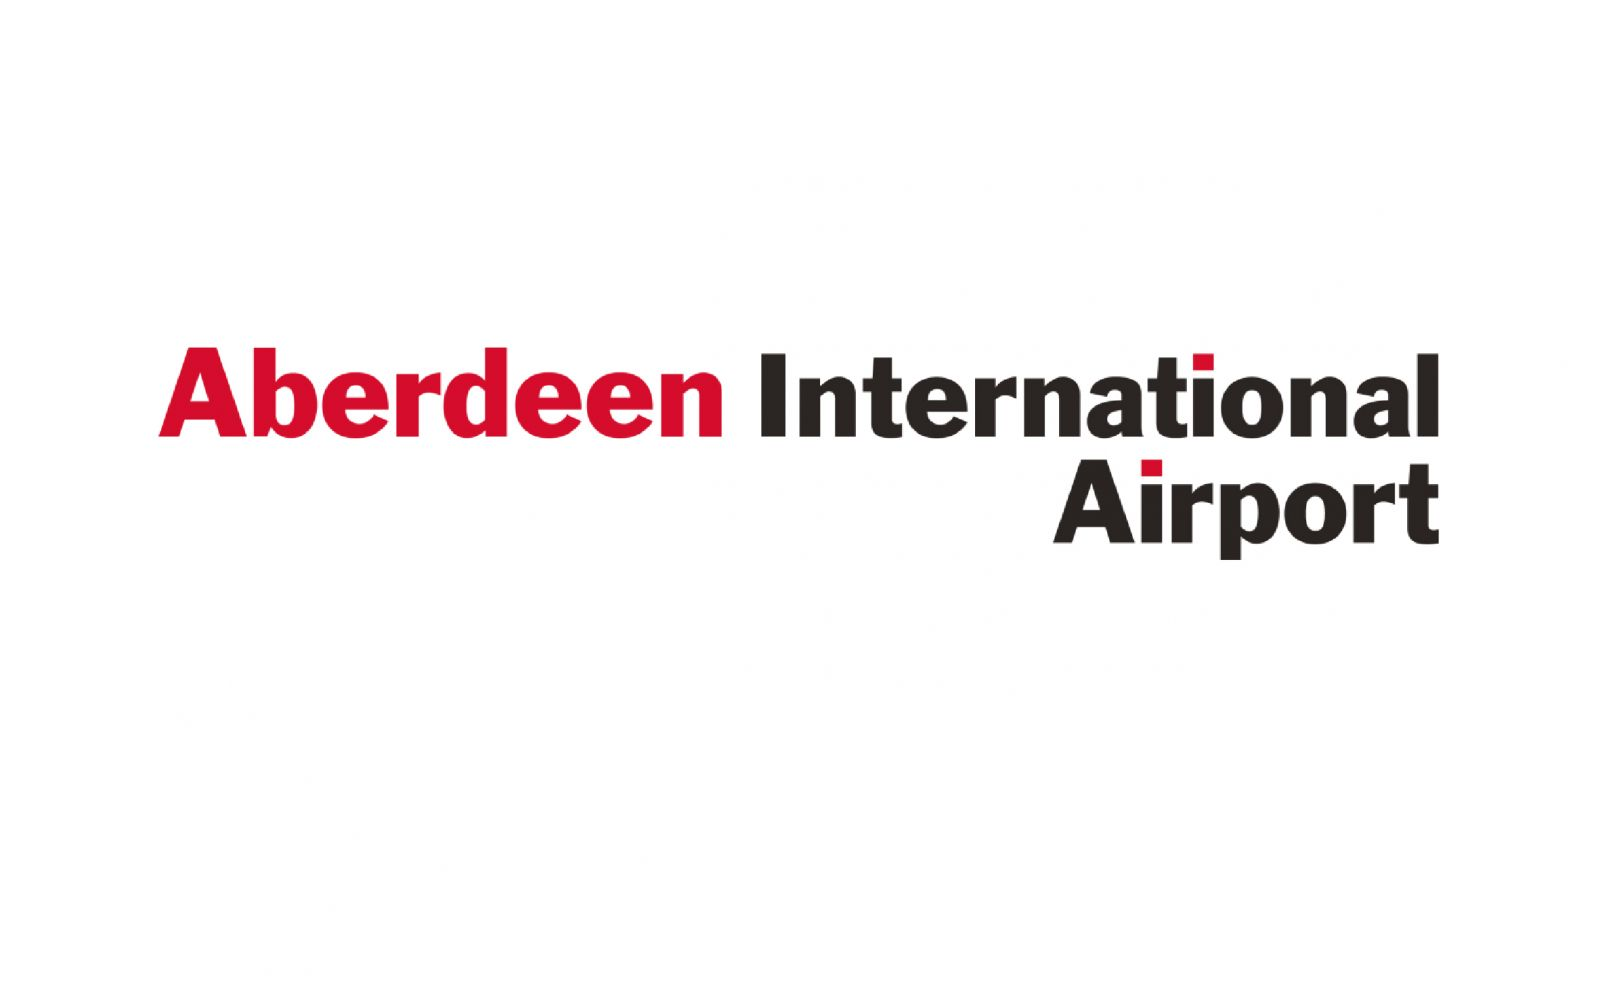 ICTS UK & Ireland takes over the provision of Hold Baggage Screening services at Aberdeen International Airport.